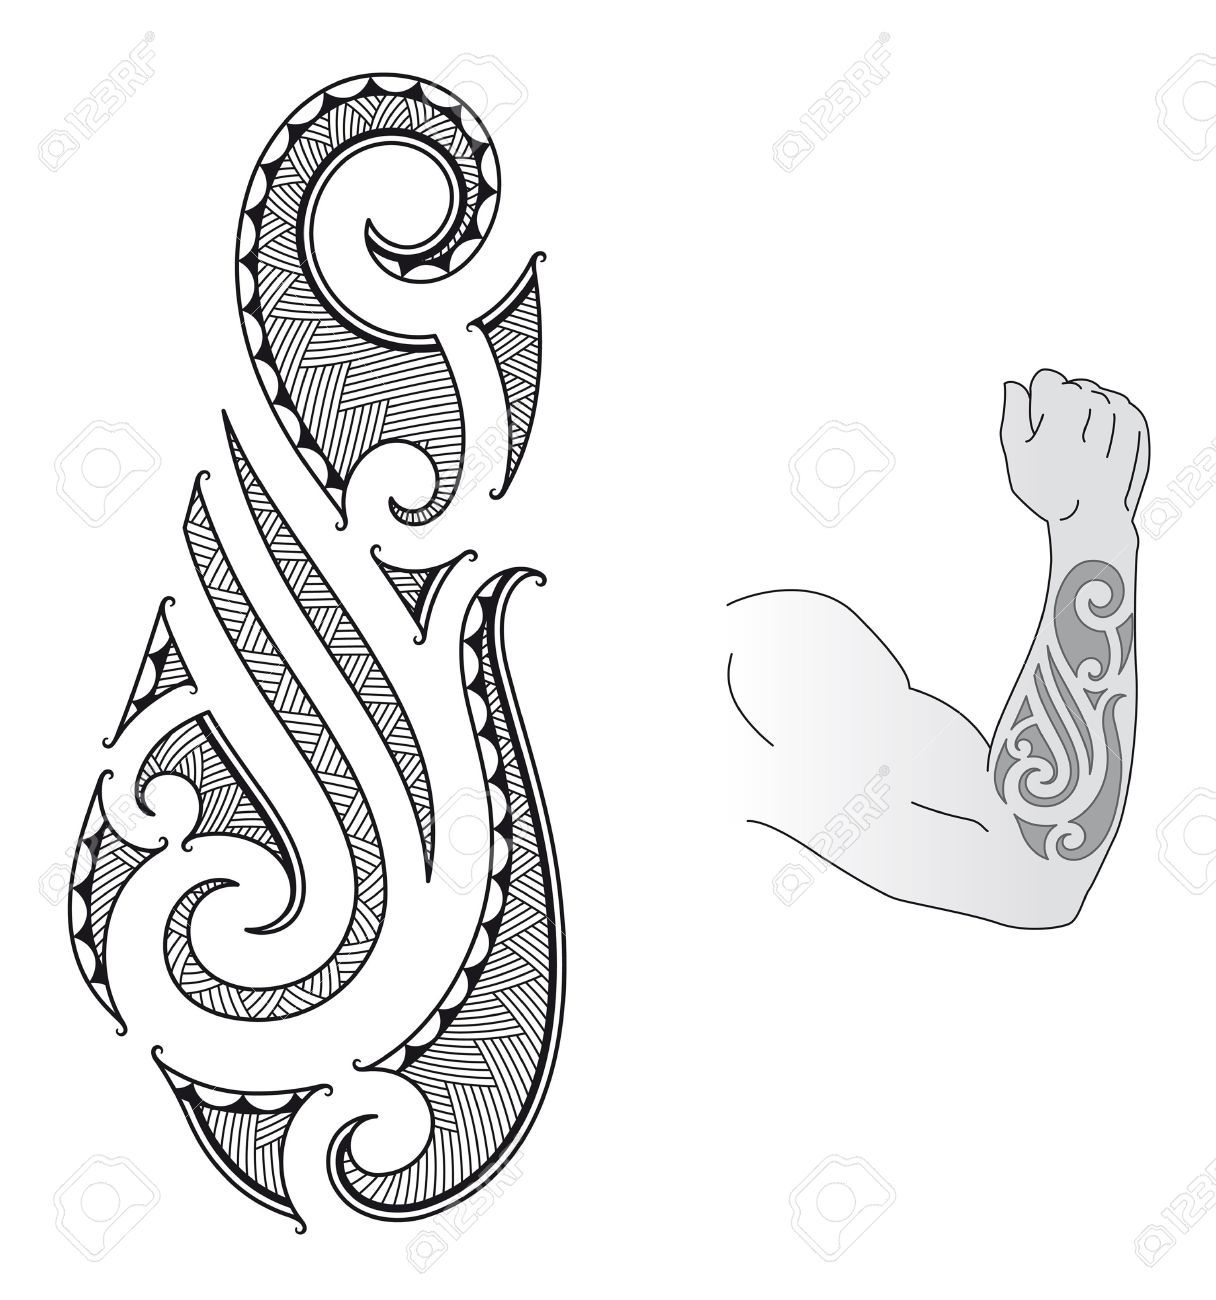 12447705 maori style tattoo design fit for a forearm stock vector 1216 1300 art - Tribal avant bras ...